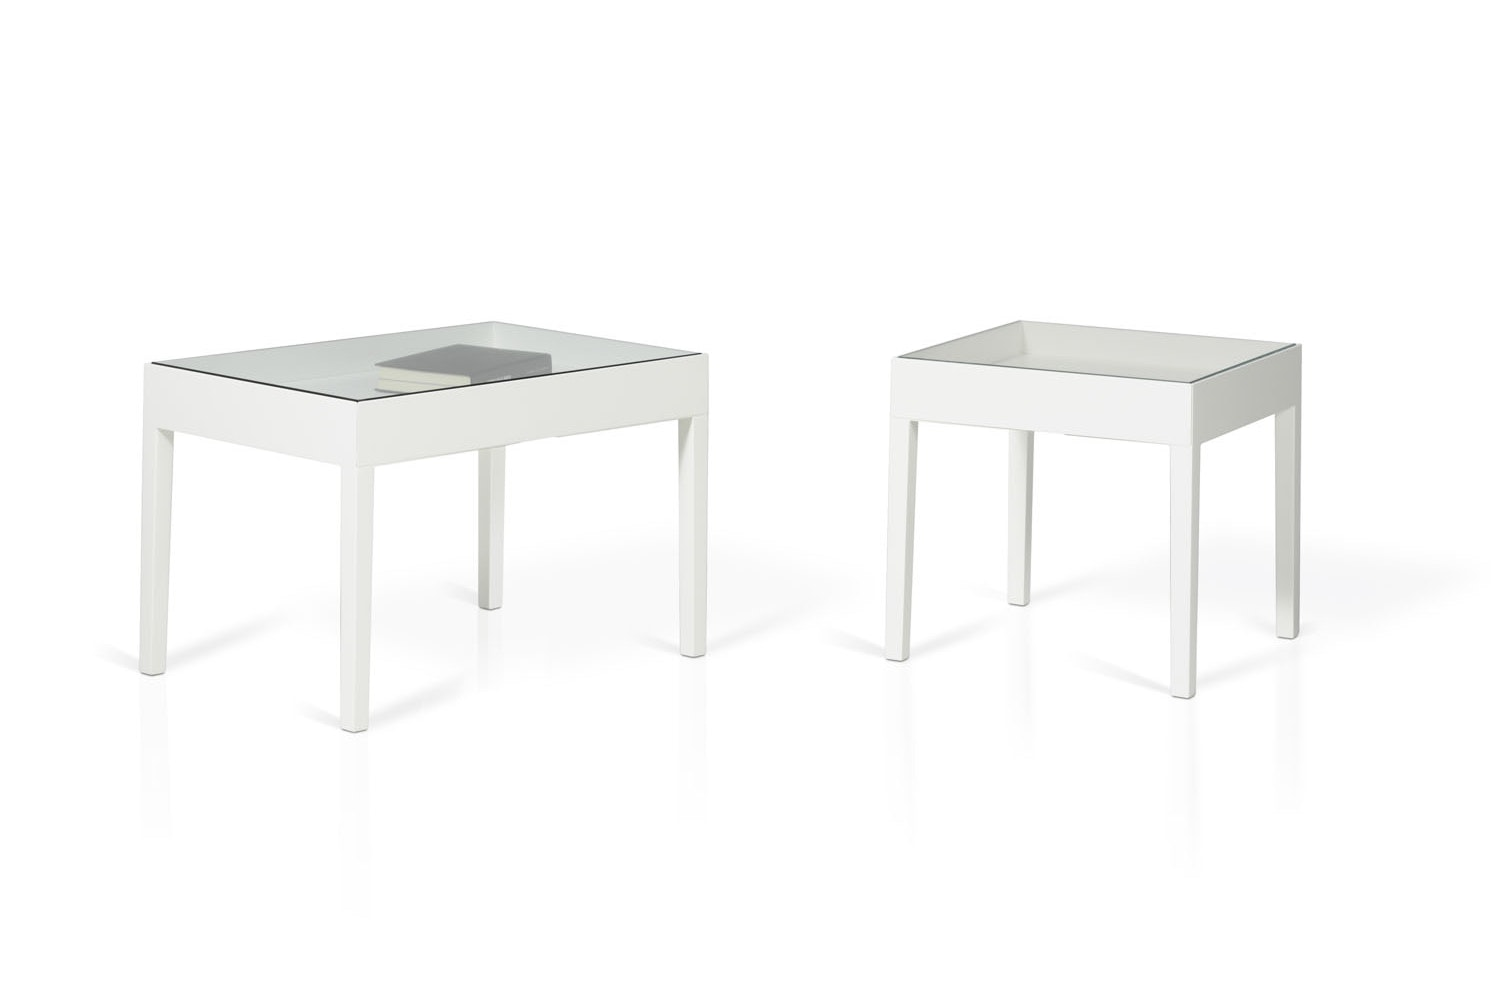 Showcase Table by Front for Porro